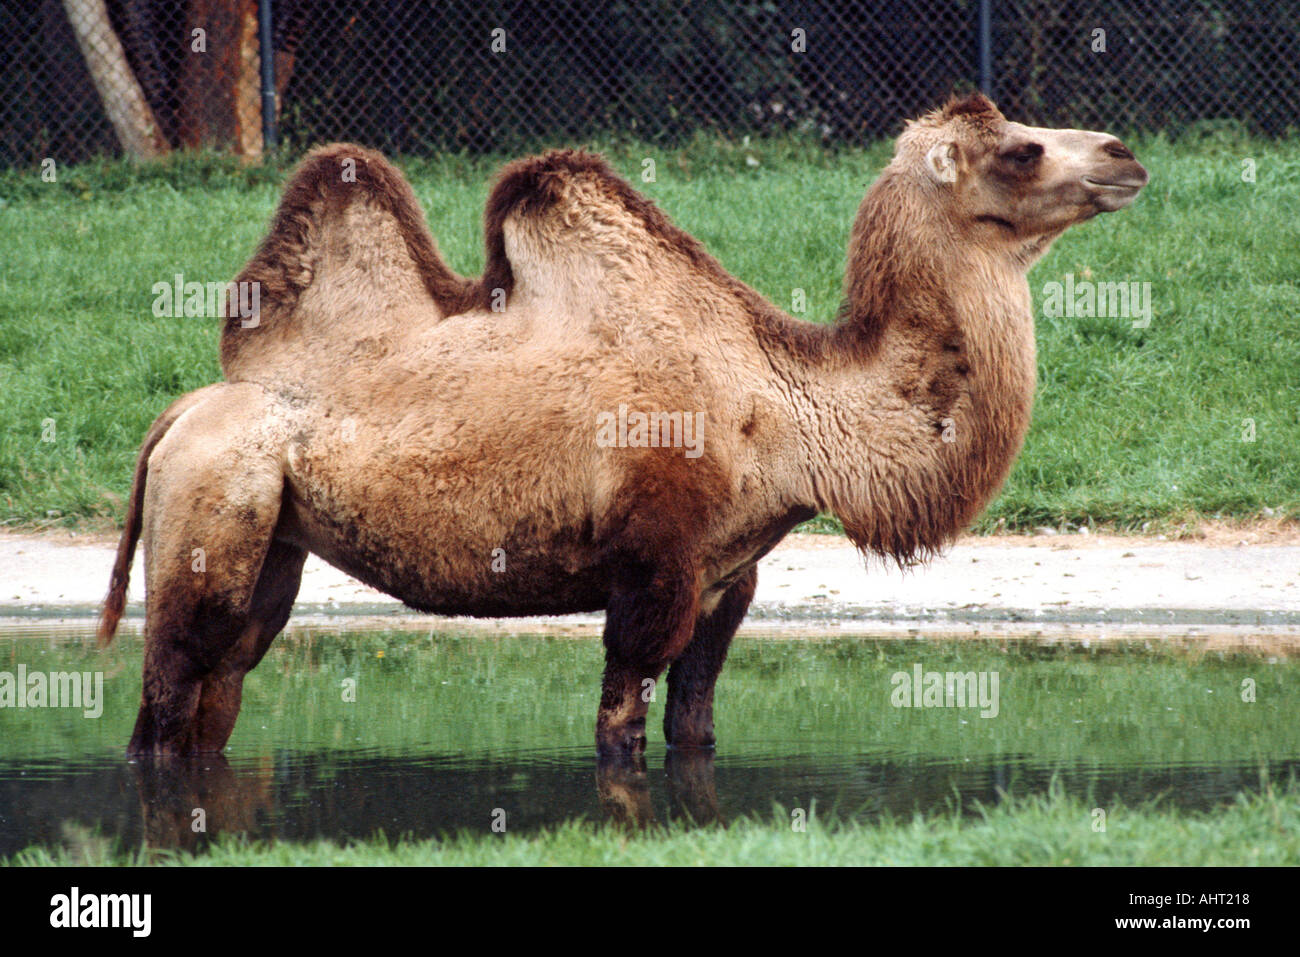 Camel With Two 2 Humps